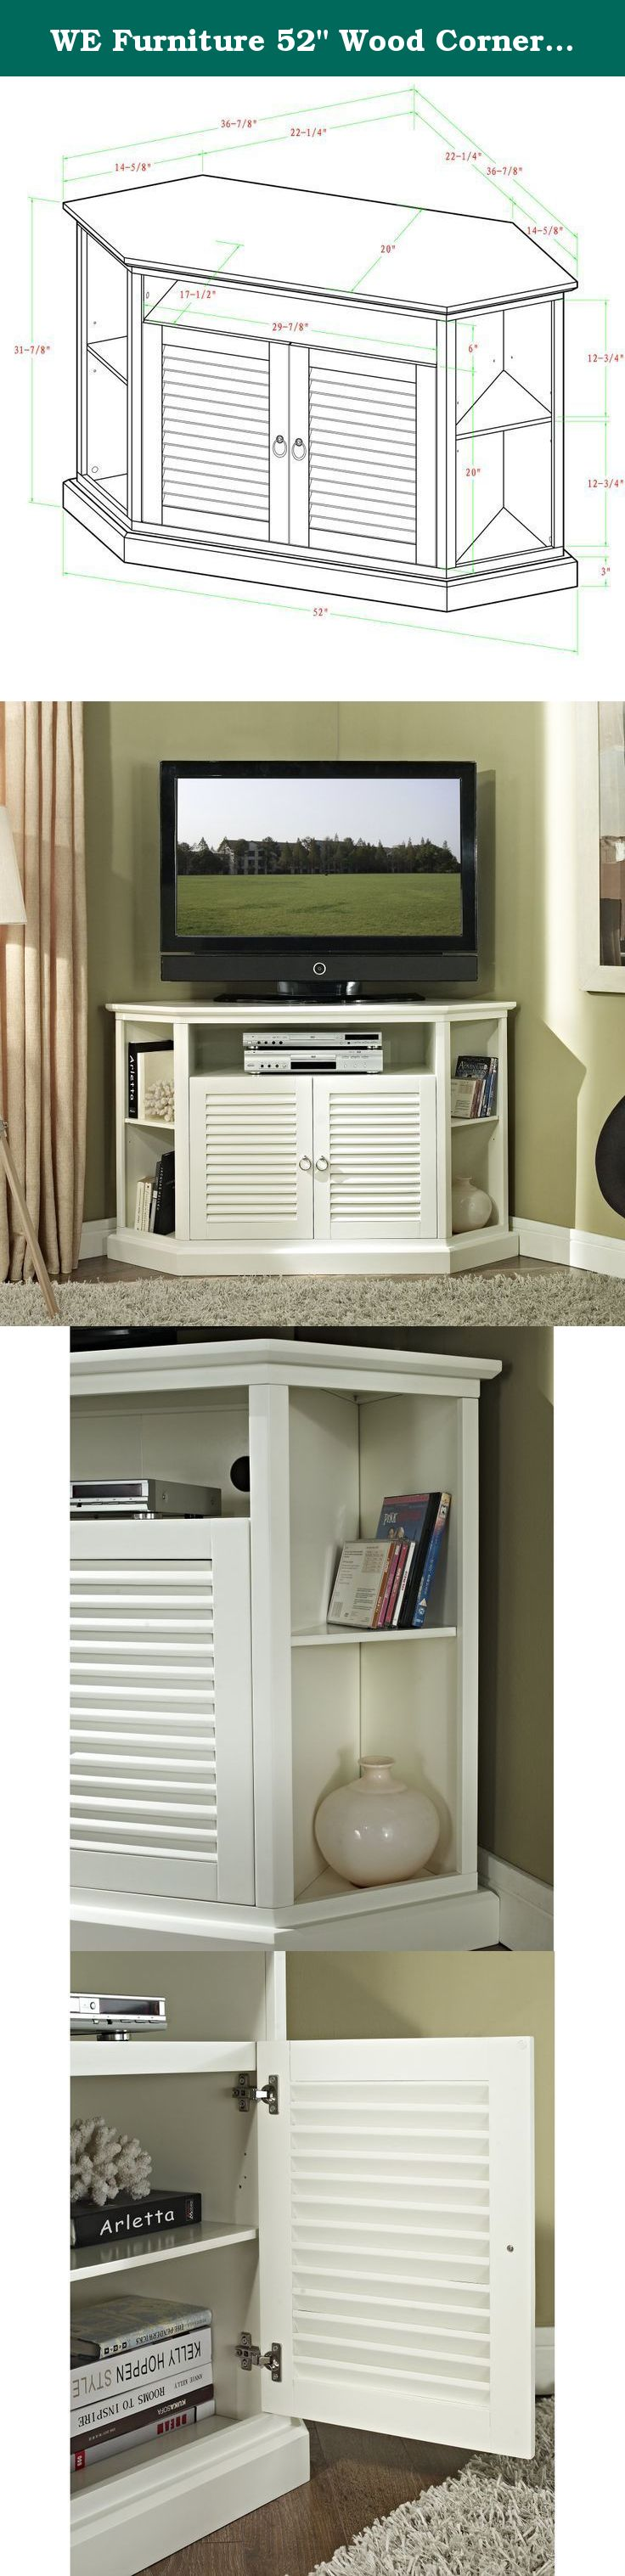 We Furniture 52 Wood Corner Tv Stand Console White Elegance And